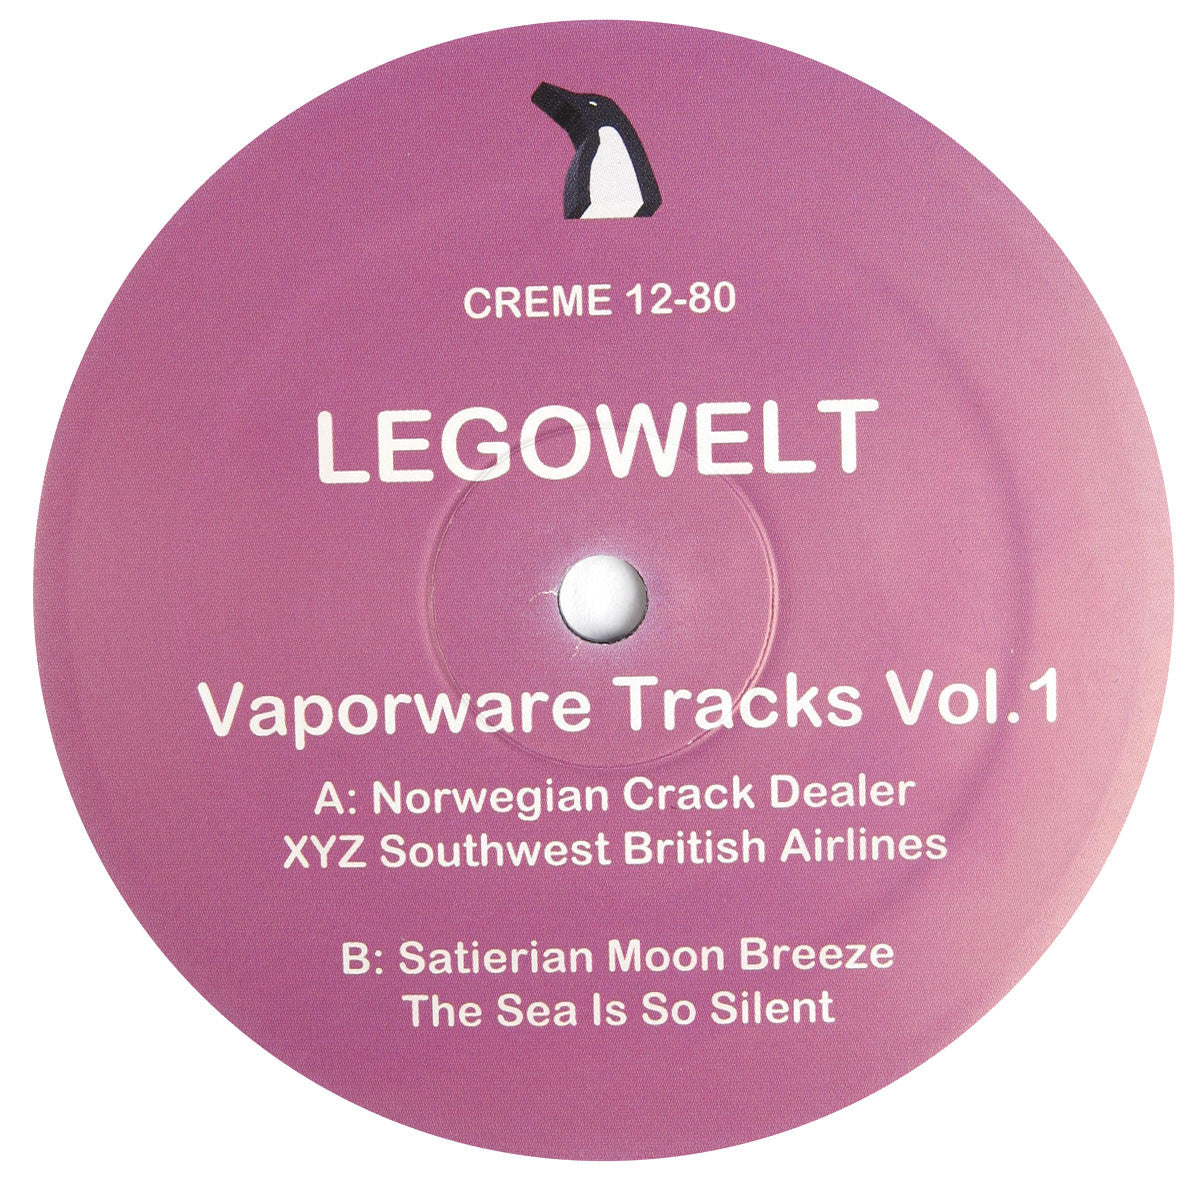 Legowelt: Vaporware Tracks Vol.1 Vinyl 12""